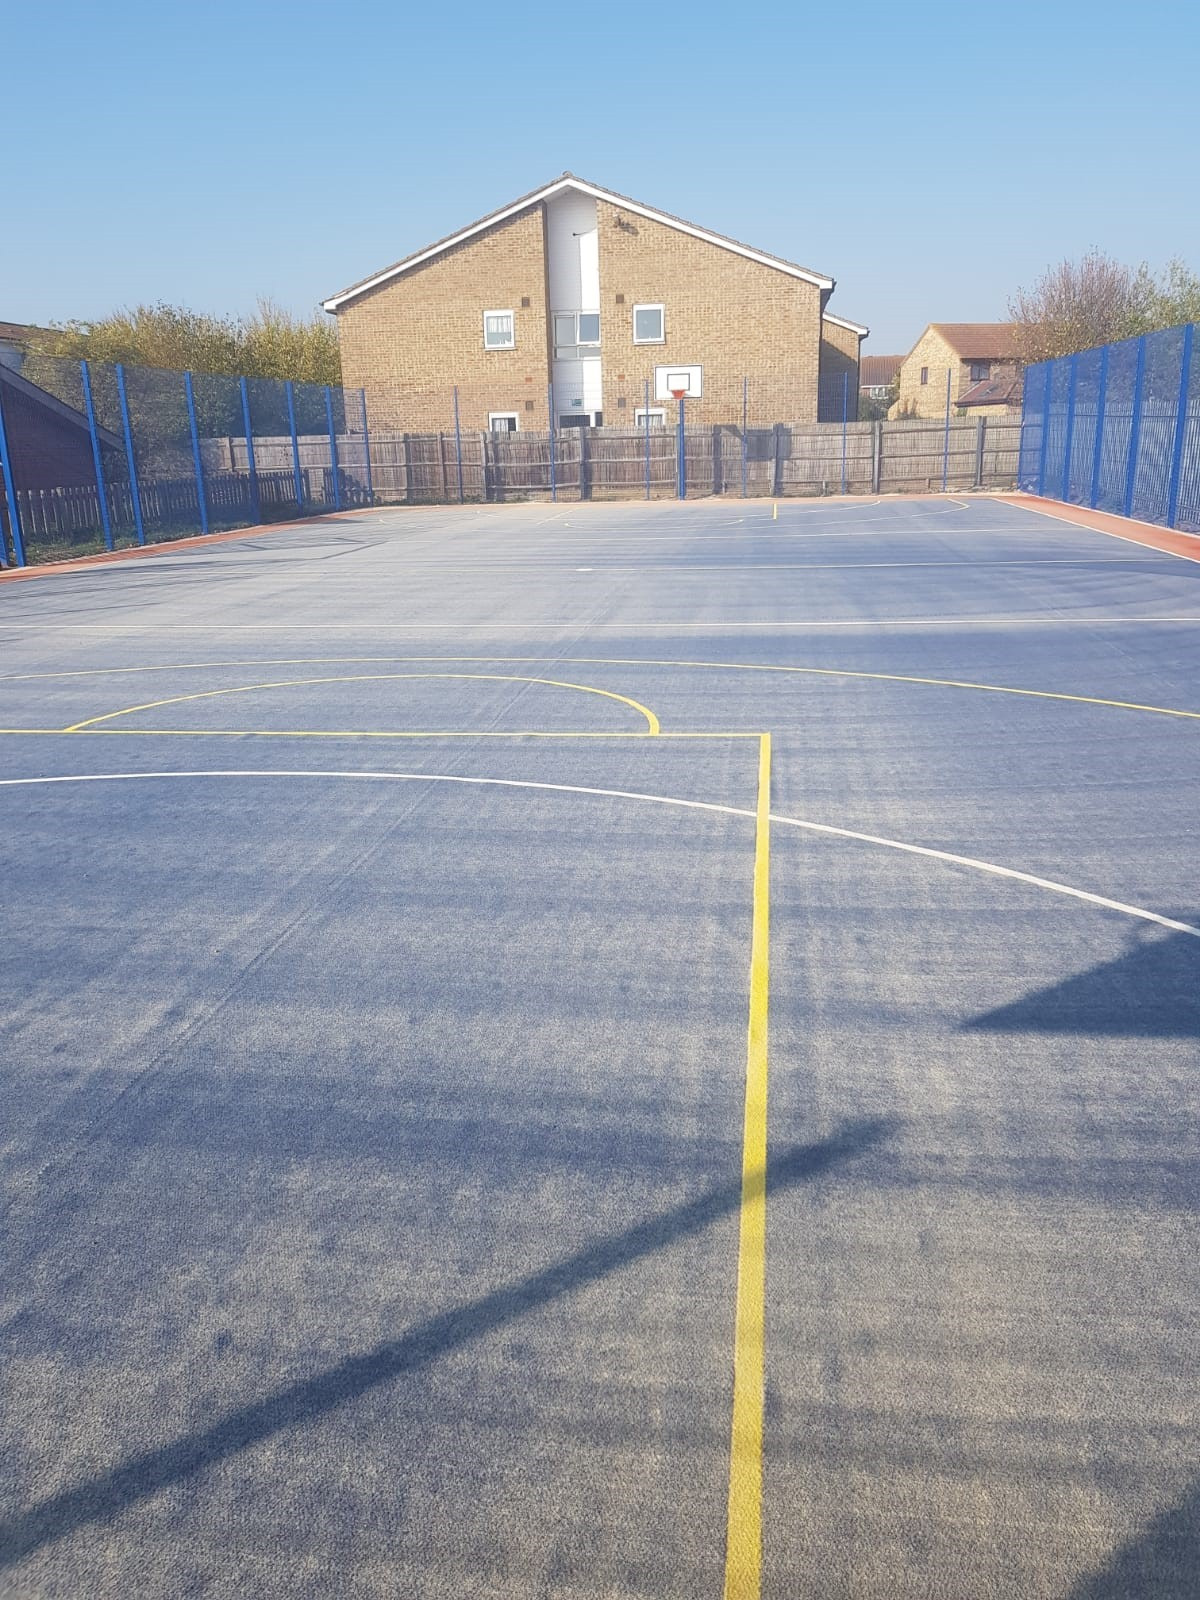 ETC Sports Surfaces delivered this MUGA construction in just 12 weeks to SAPCA approved standards